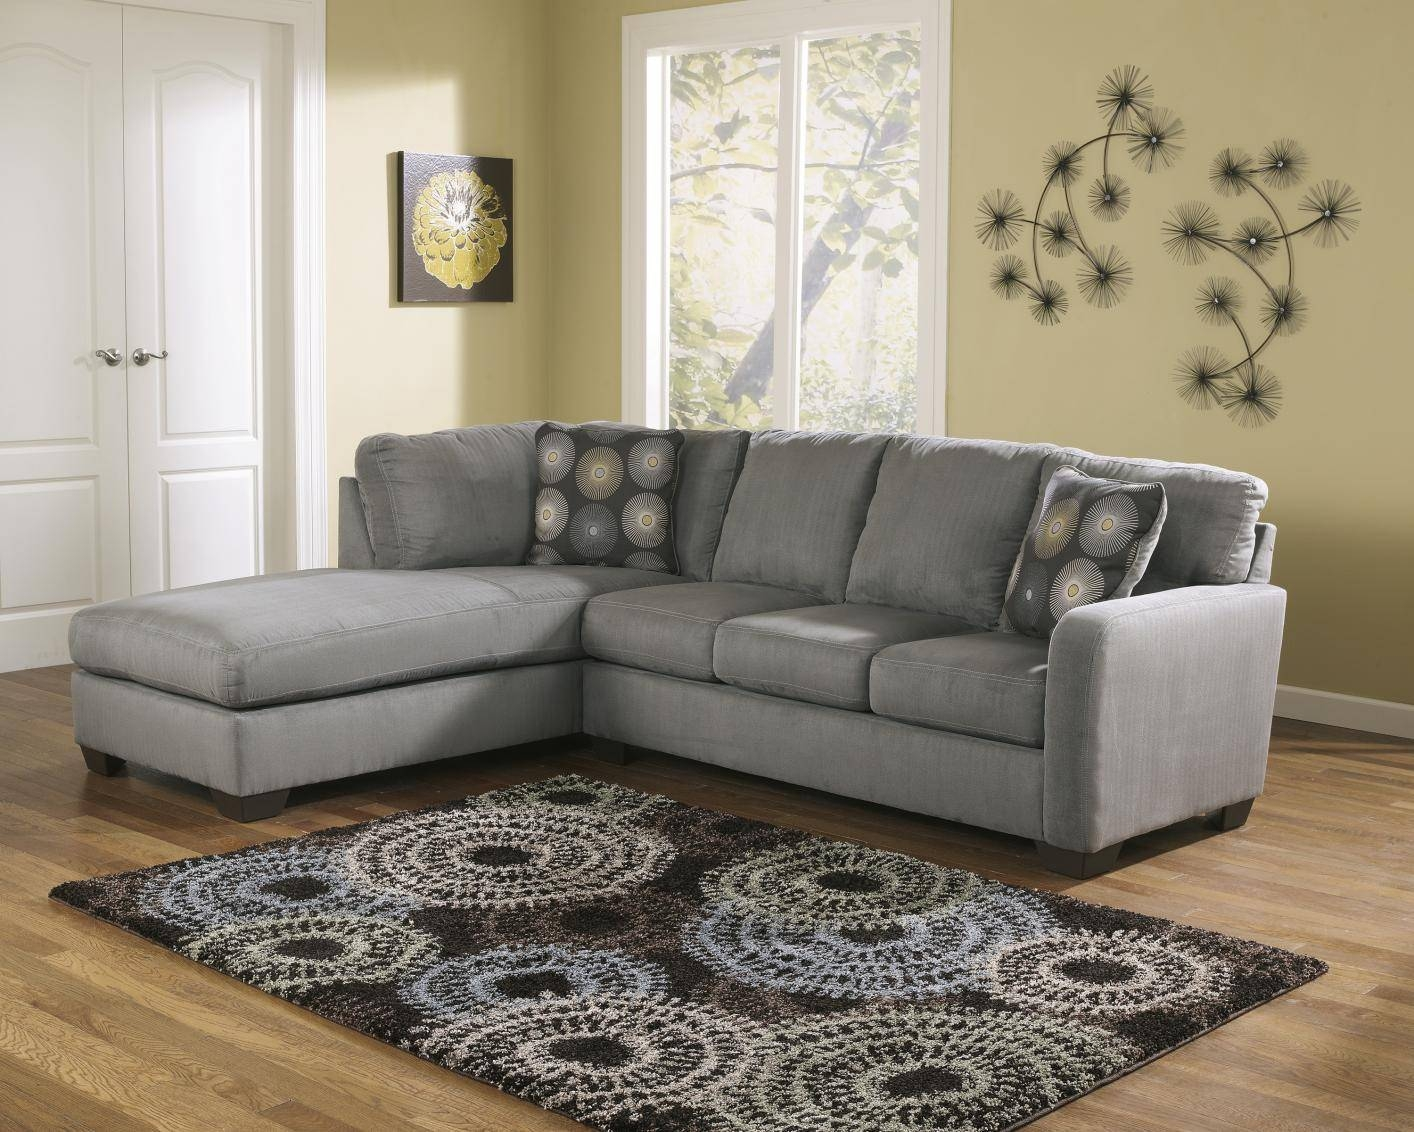 Signature Designashley 7020067 7020016 Grey Fabric Sectional intended for Fabric Sectional Sofa (Image 26 of 30)